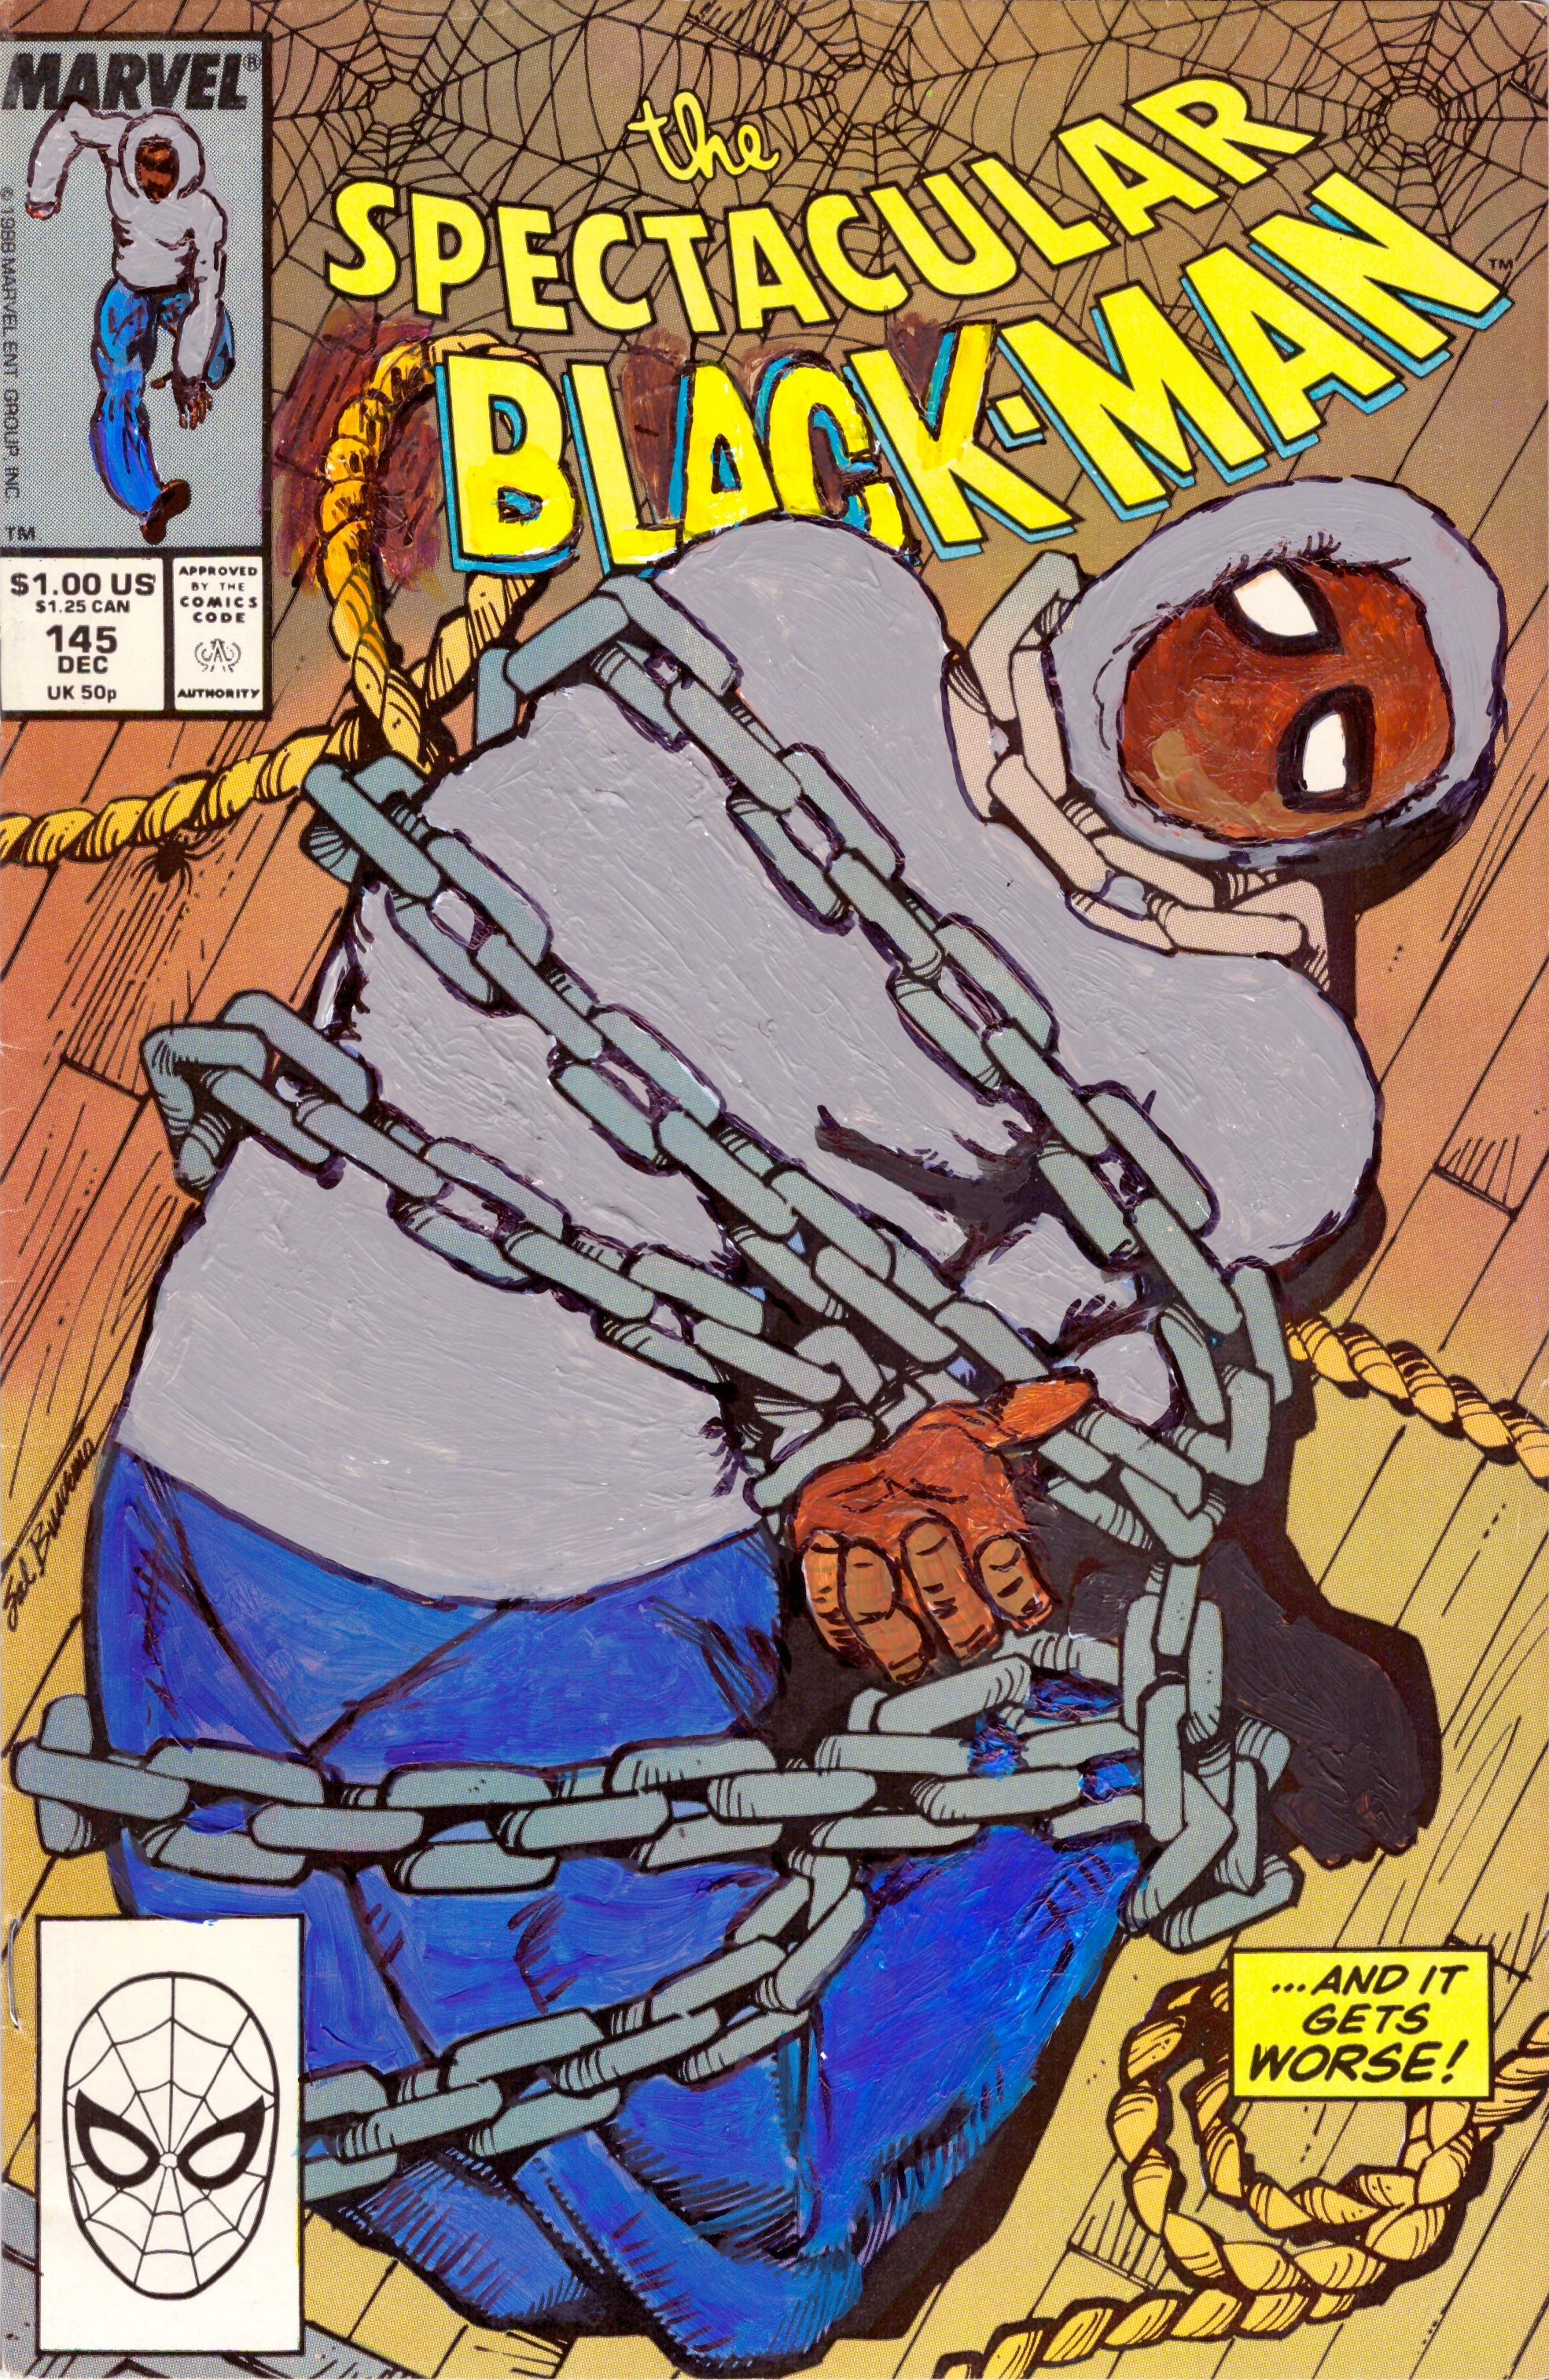 KB-100, Kumasi J. Barnett, Spectacular Black-Man #145  Acrylic, marker, pen and oil marker on comic book, 9 3:4h x 6 1:4w inches.jpg